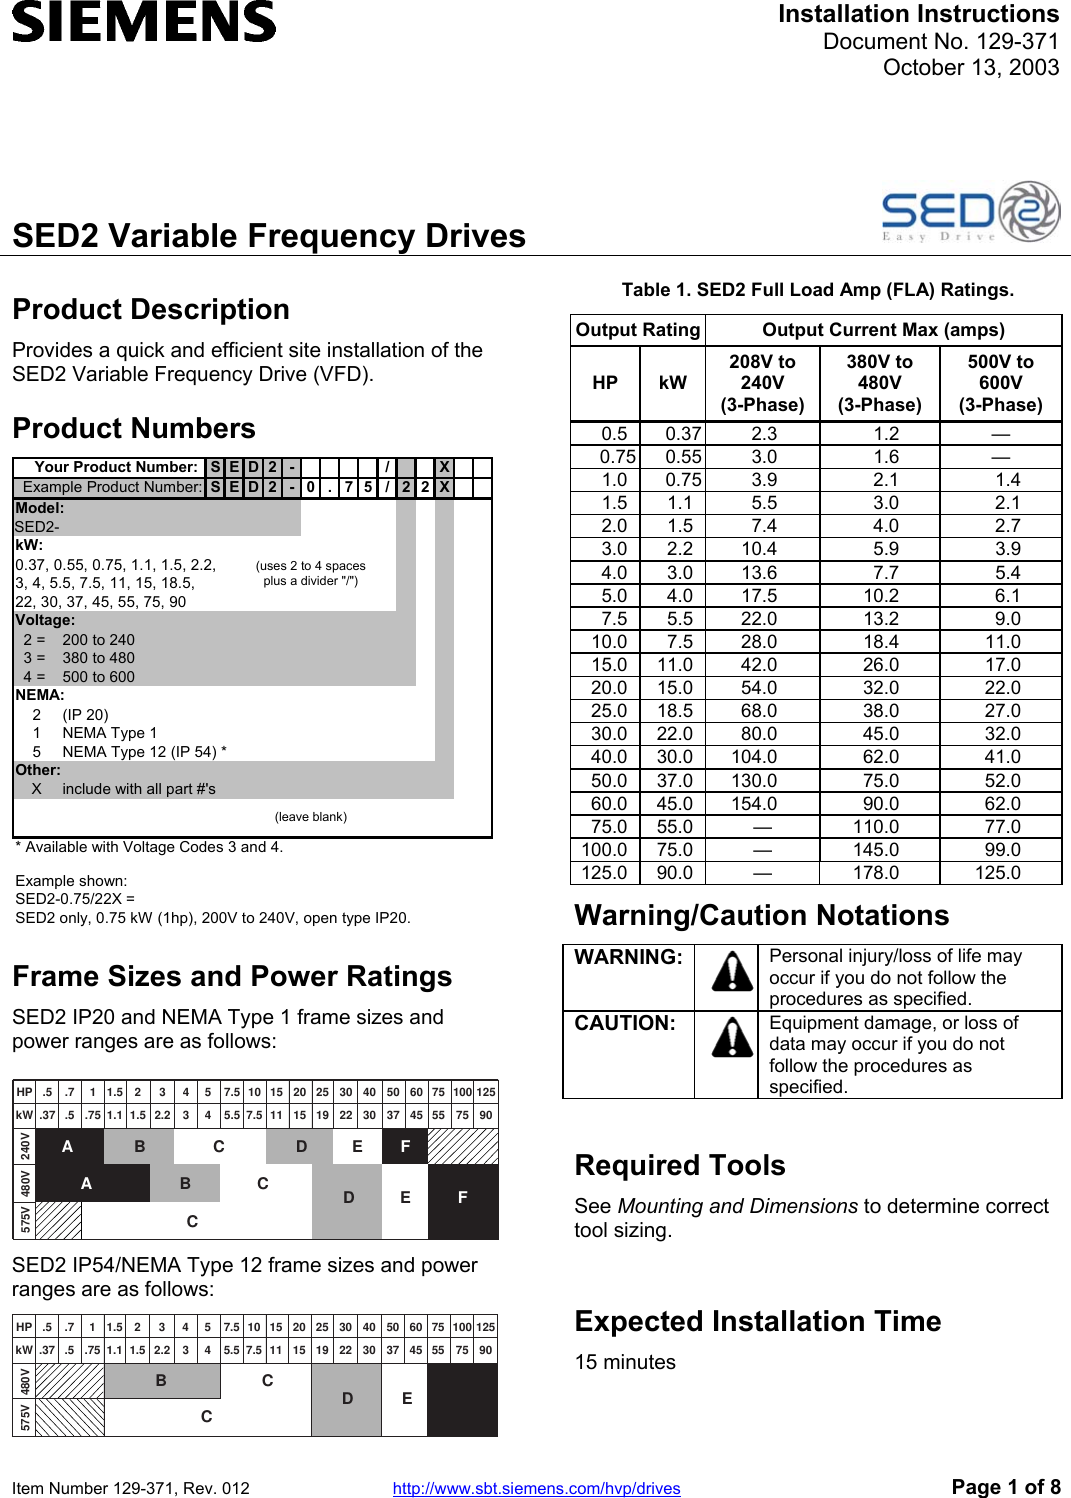 SED2 Variable Frequency Drives Siemens Installation Instructions